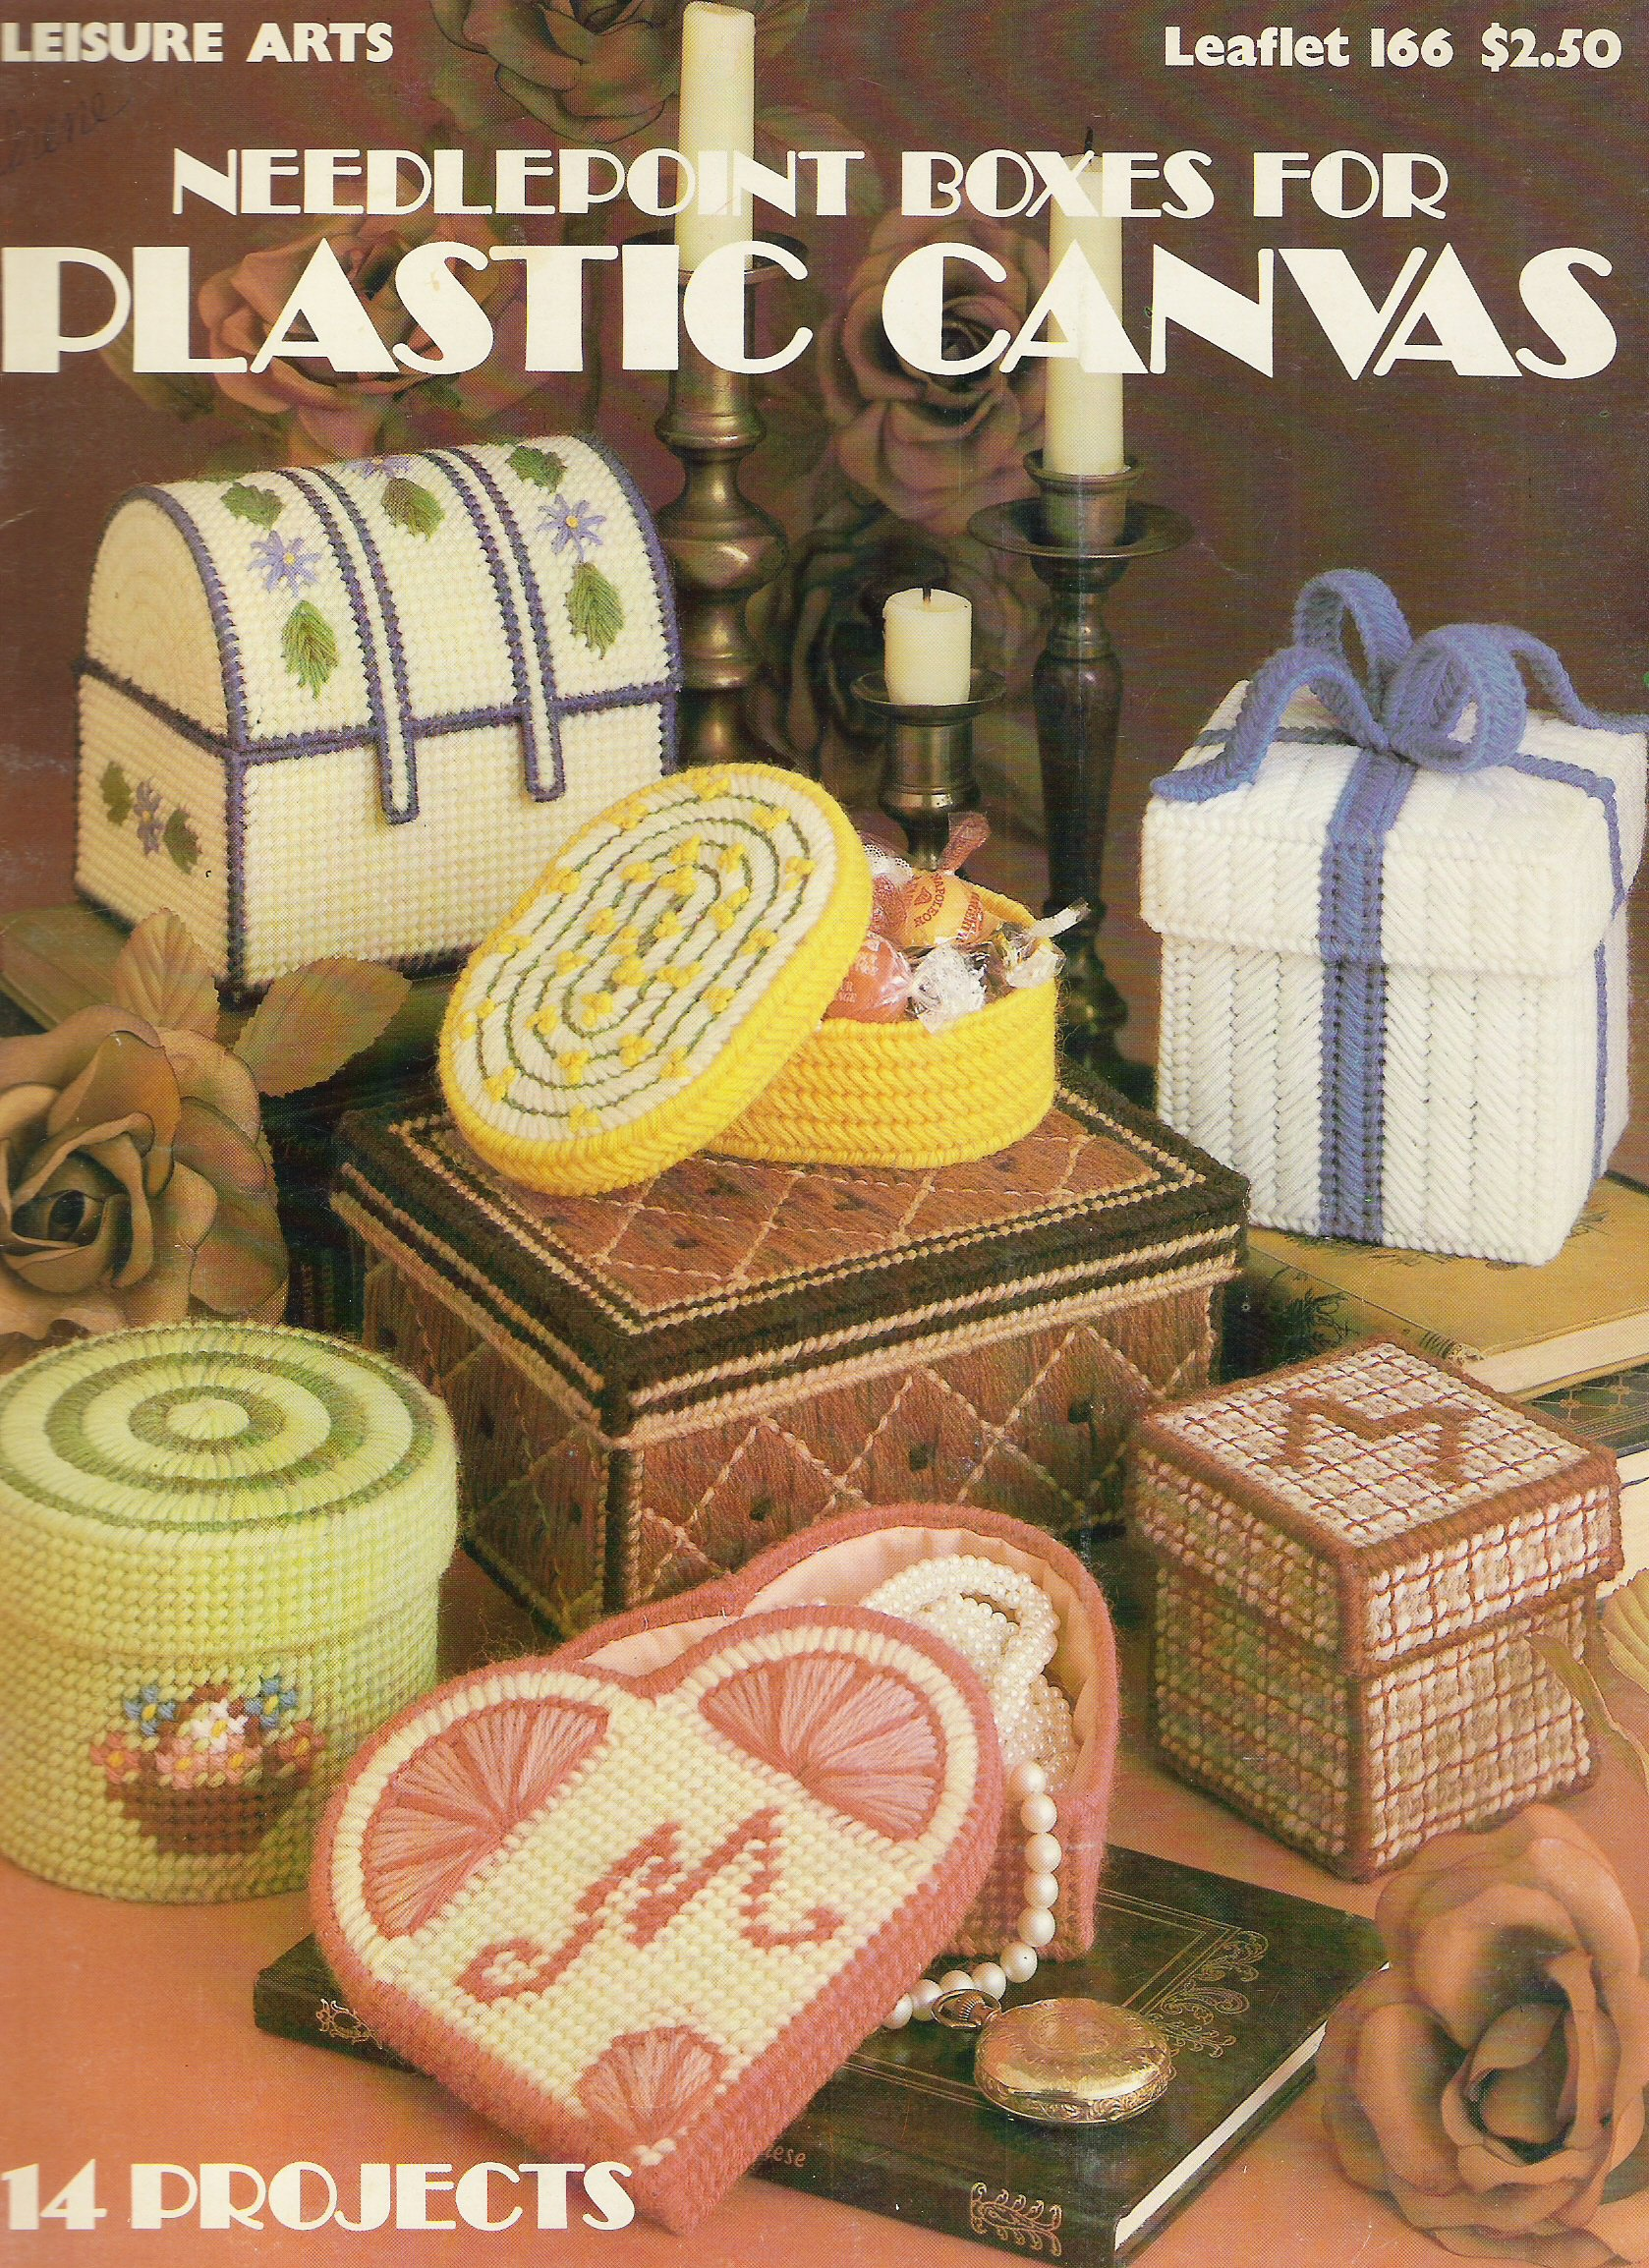 Needlepoint Boxes for Plastic Canvas (166)